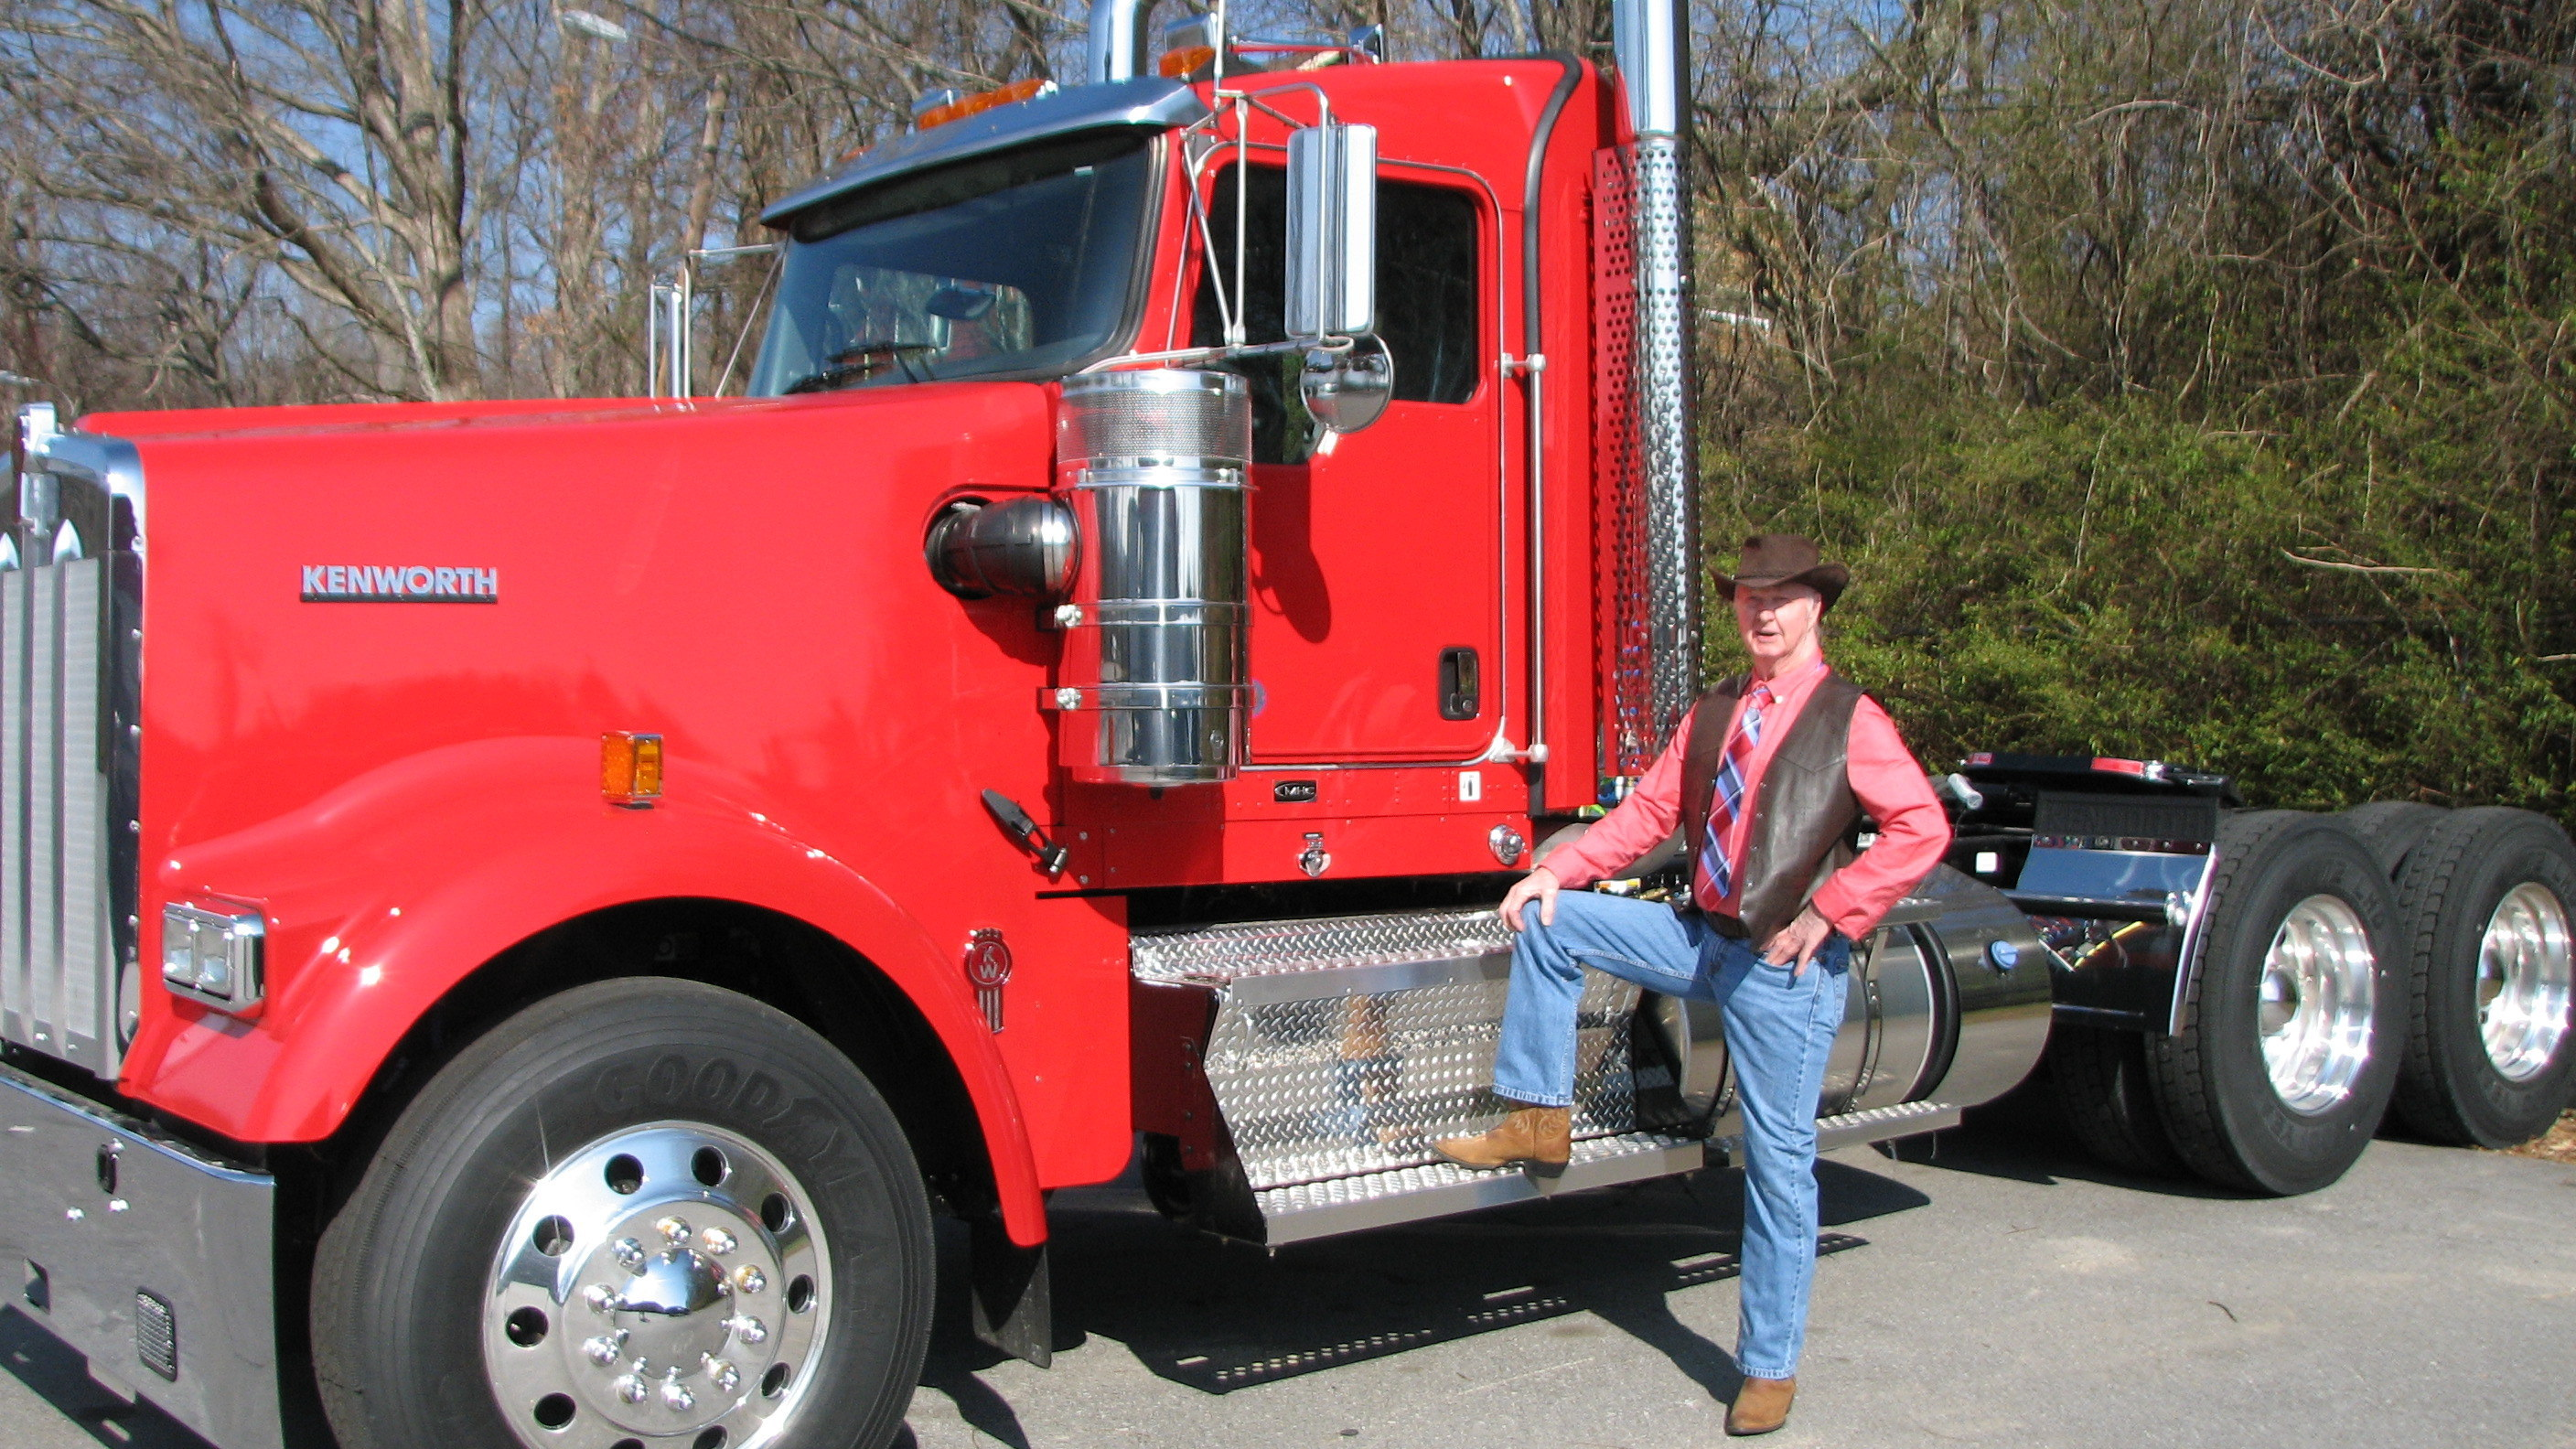 Big Rig Coming For You : Big rig story author and trucker visit tiverton schools